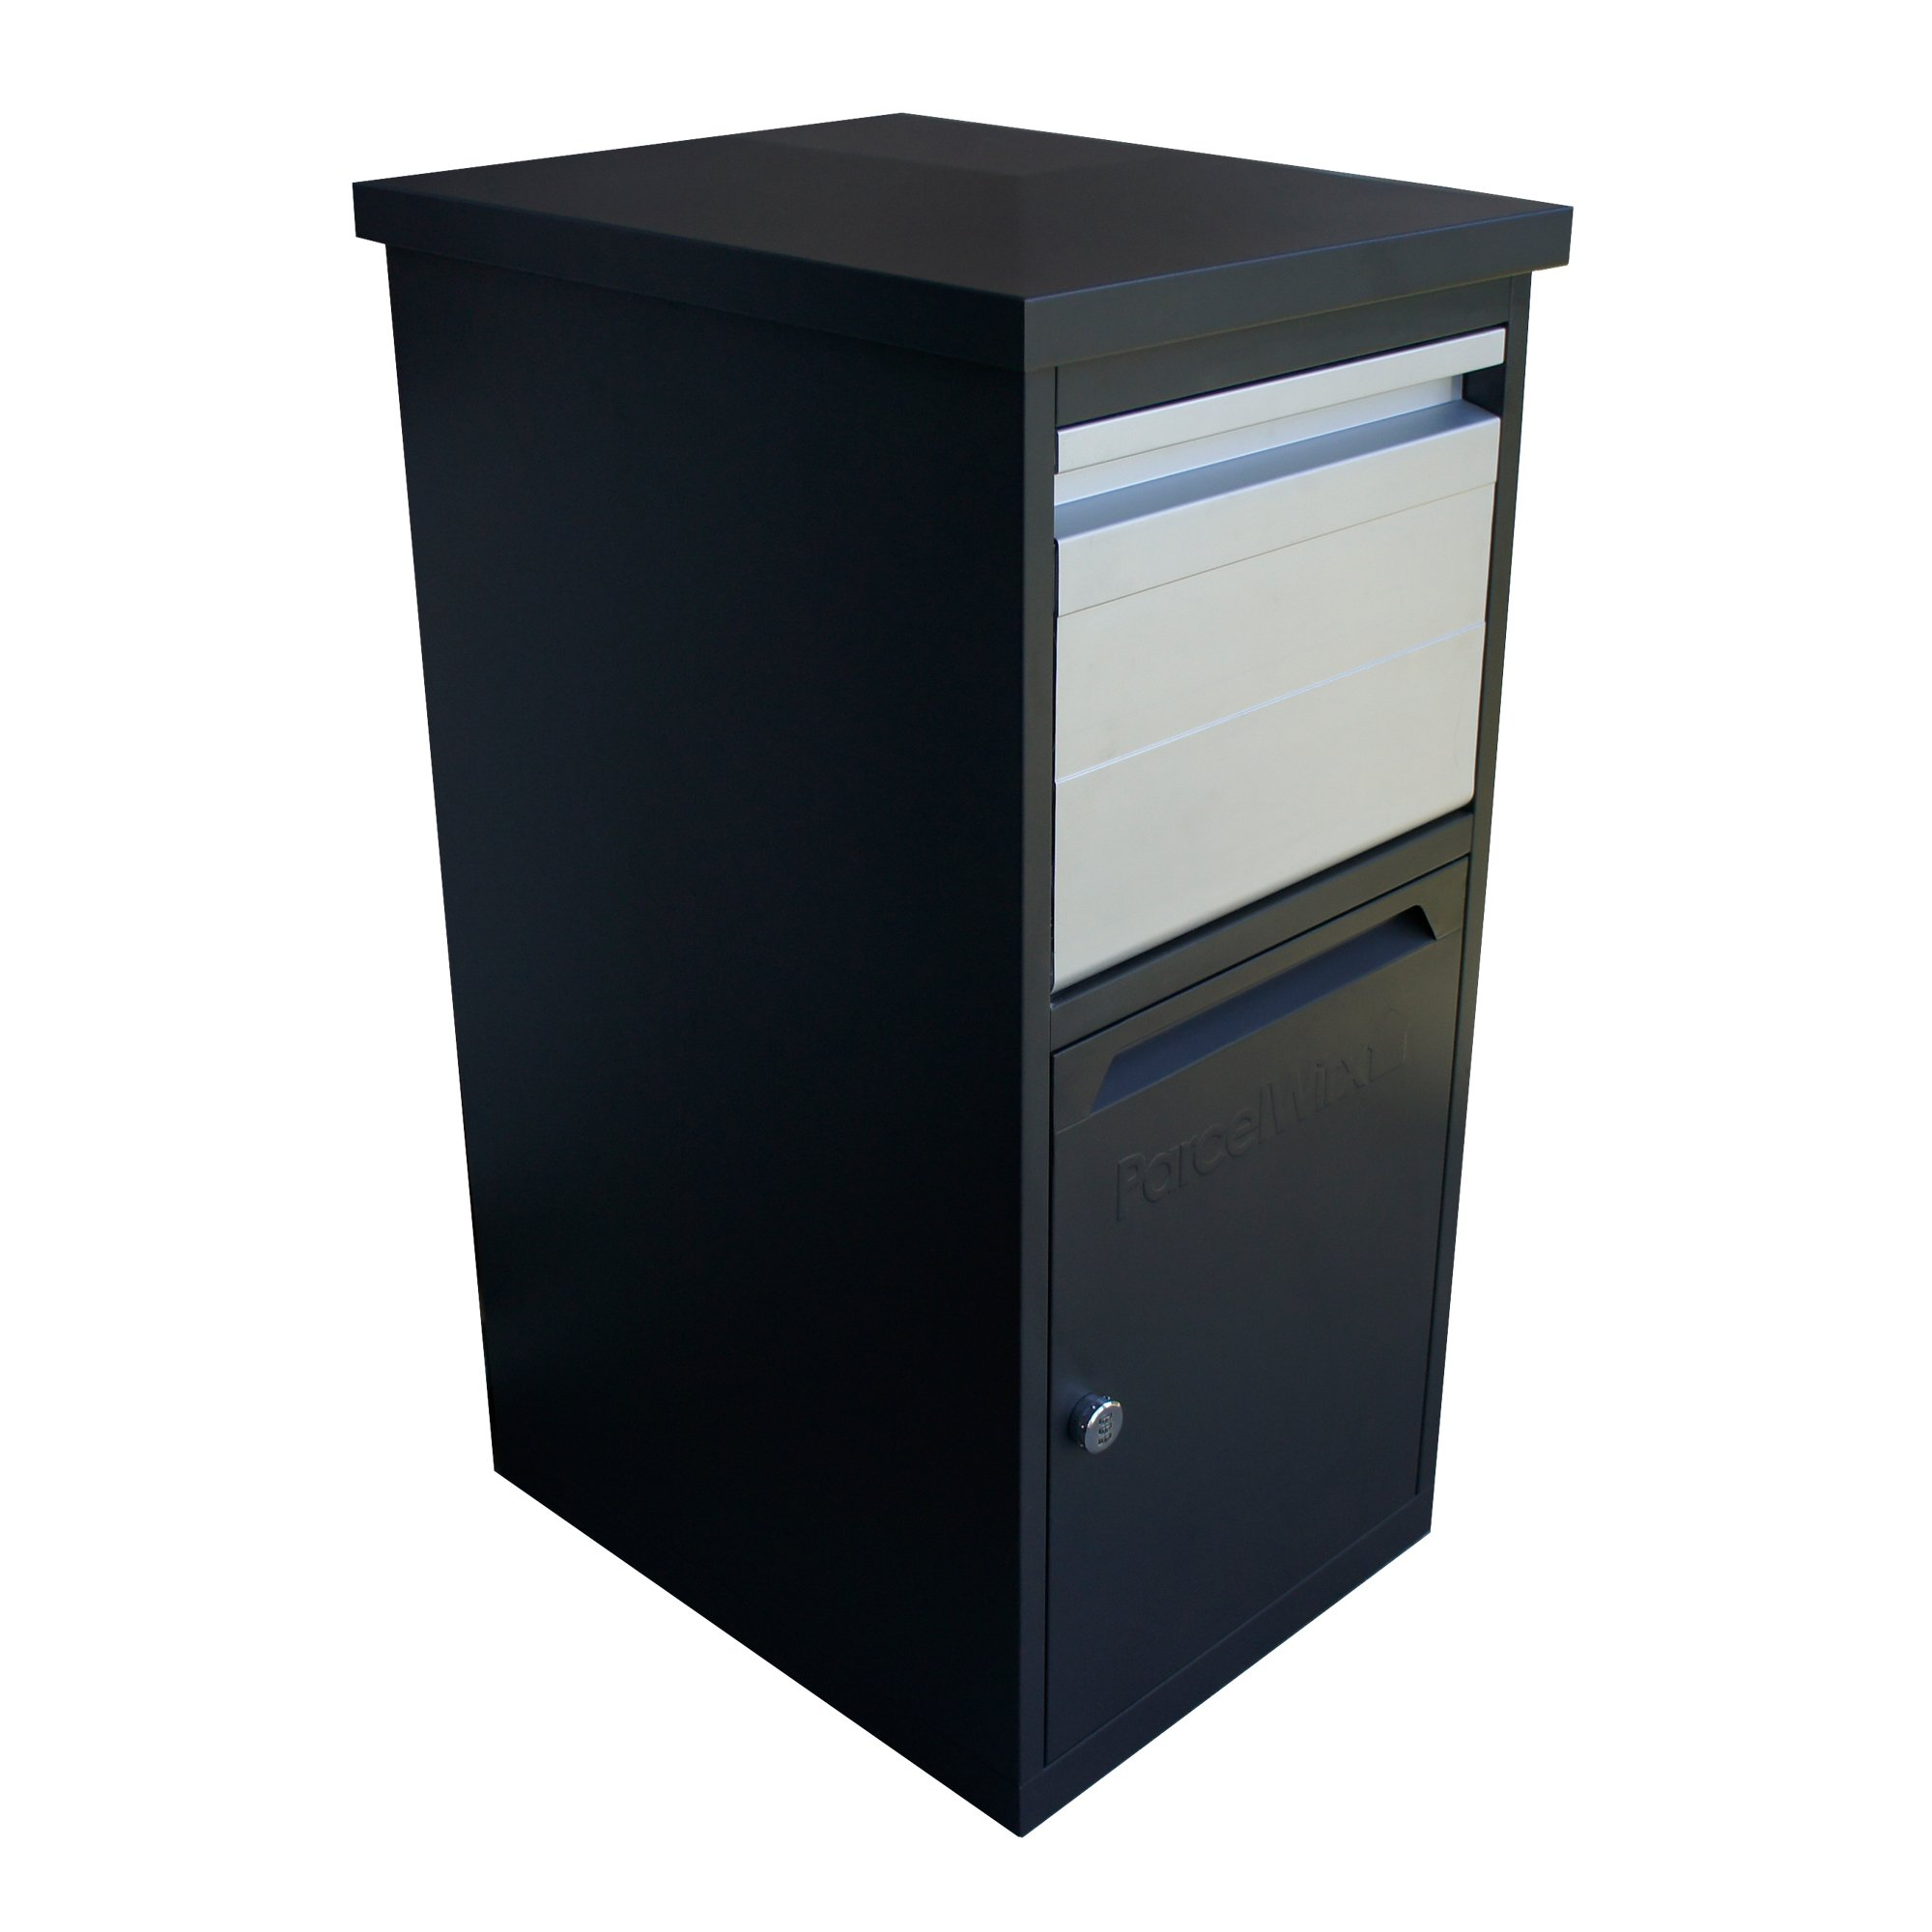 RTS Home Accents 5502-00101A-70-81 Secure Dropbox Parcelwirx Parcel, Graphite by RTS Home Accents